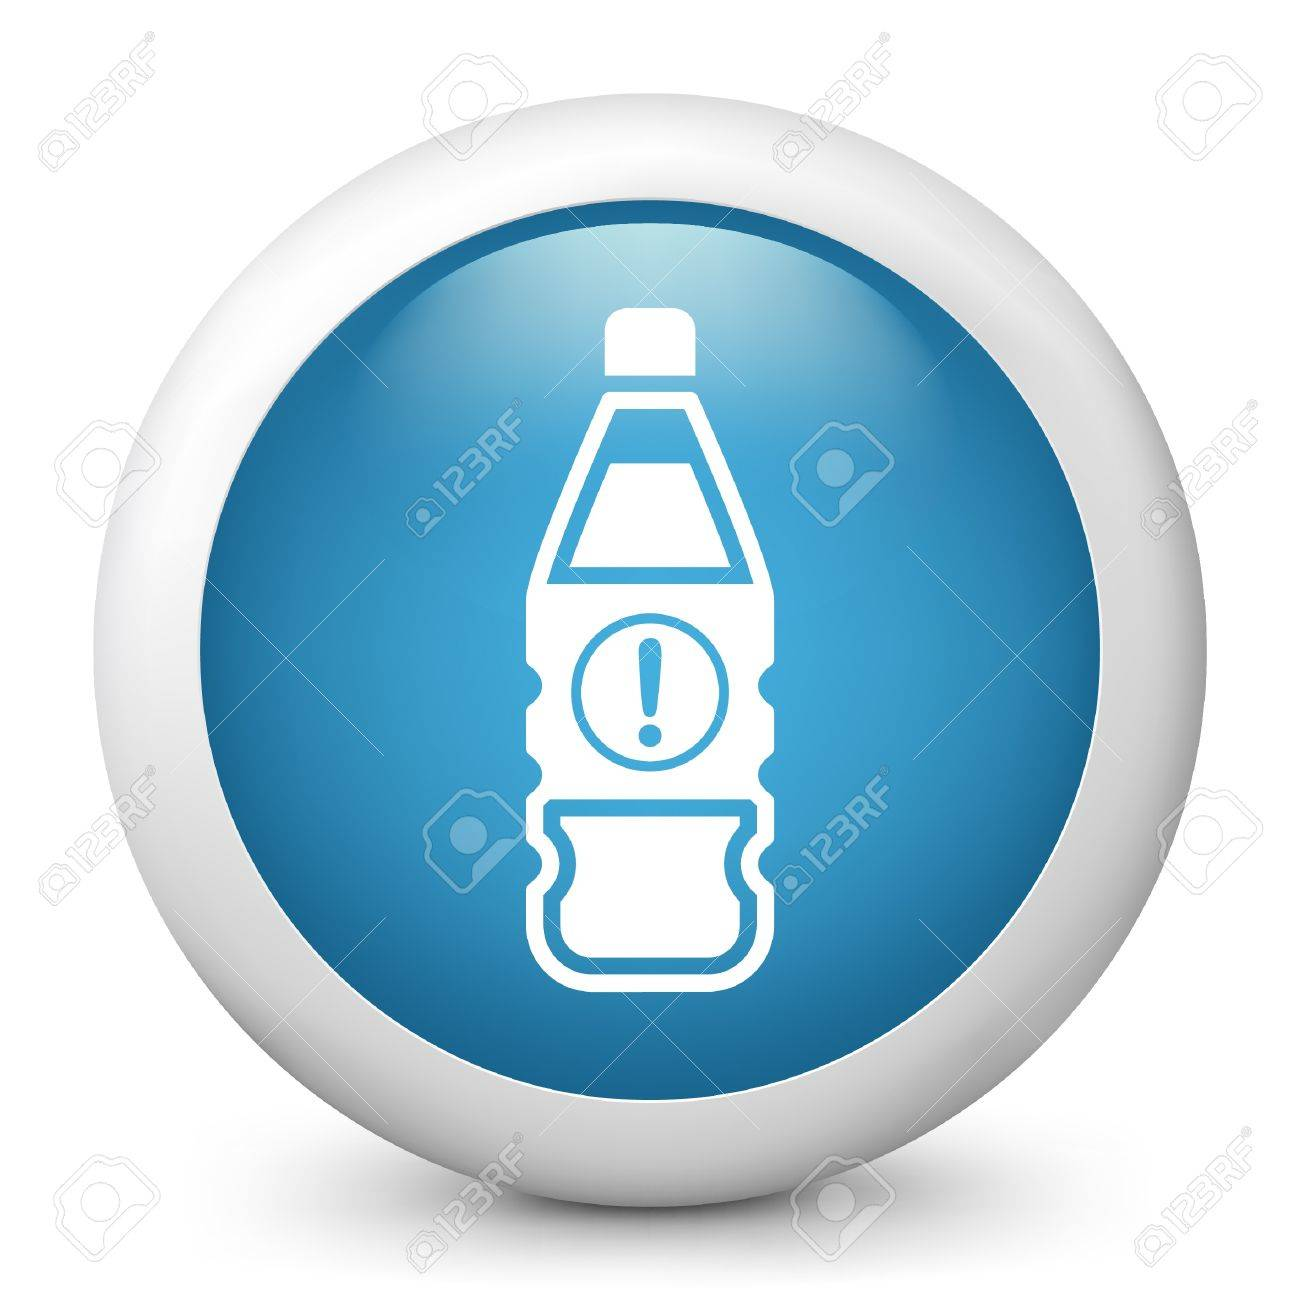 Vector illustration of blue glossy icon. Stock Vector - 17735871